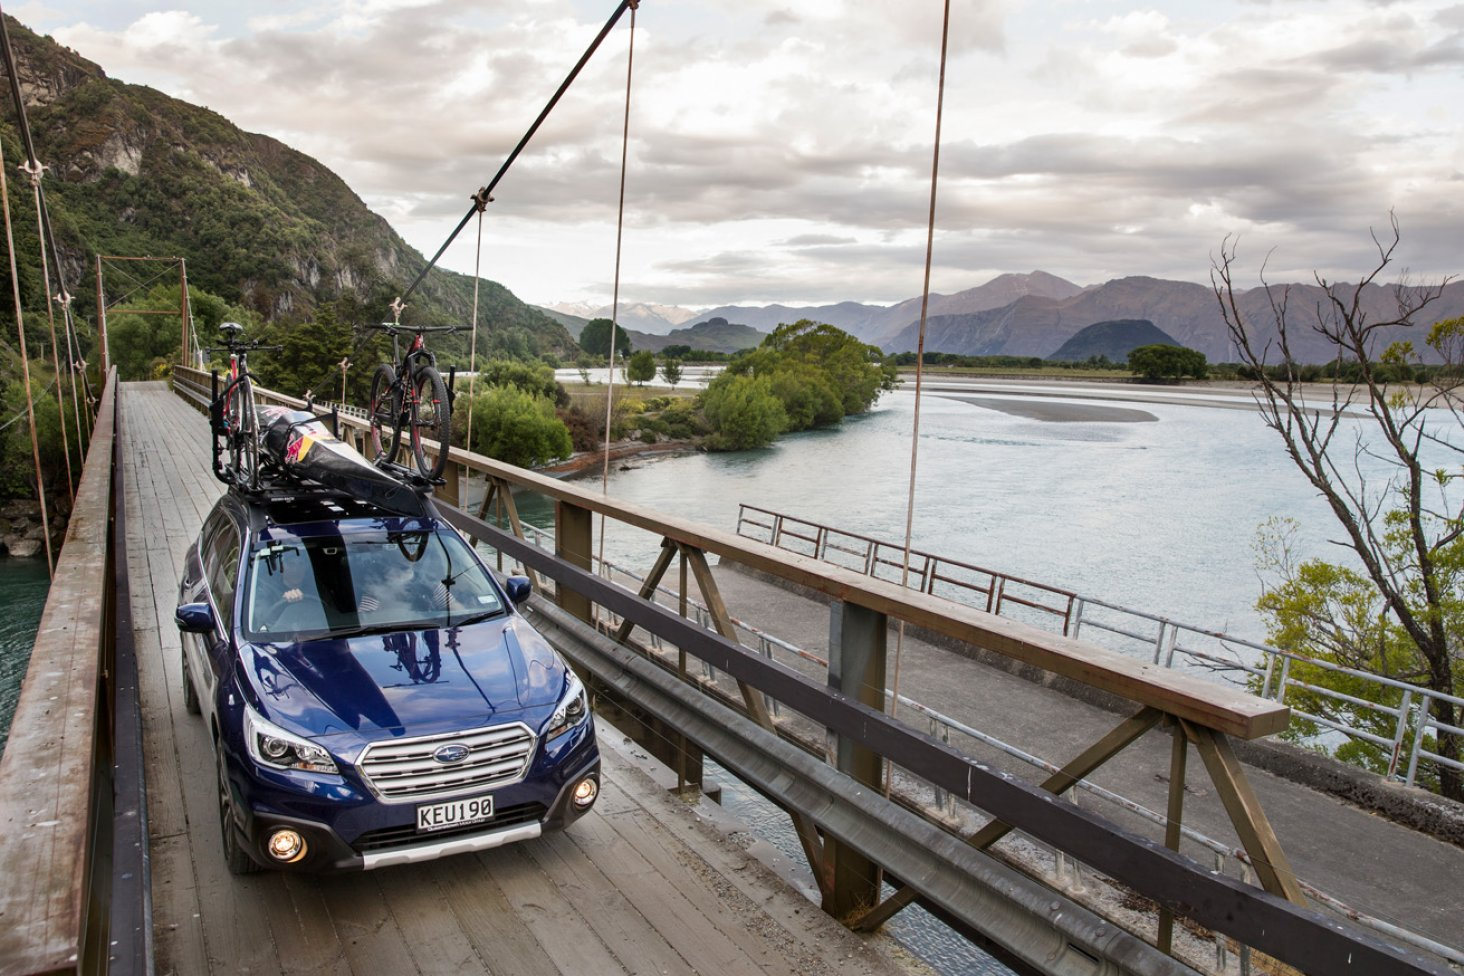 Subaru Brand Ambassador Braden Currie with his Subaru Outback, which will be supporting him on Saturday's longest day, in his quest for a fourth Kathmandu Coast to Coast title. PHOTOS FREE FOR EDITORIAL USE.